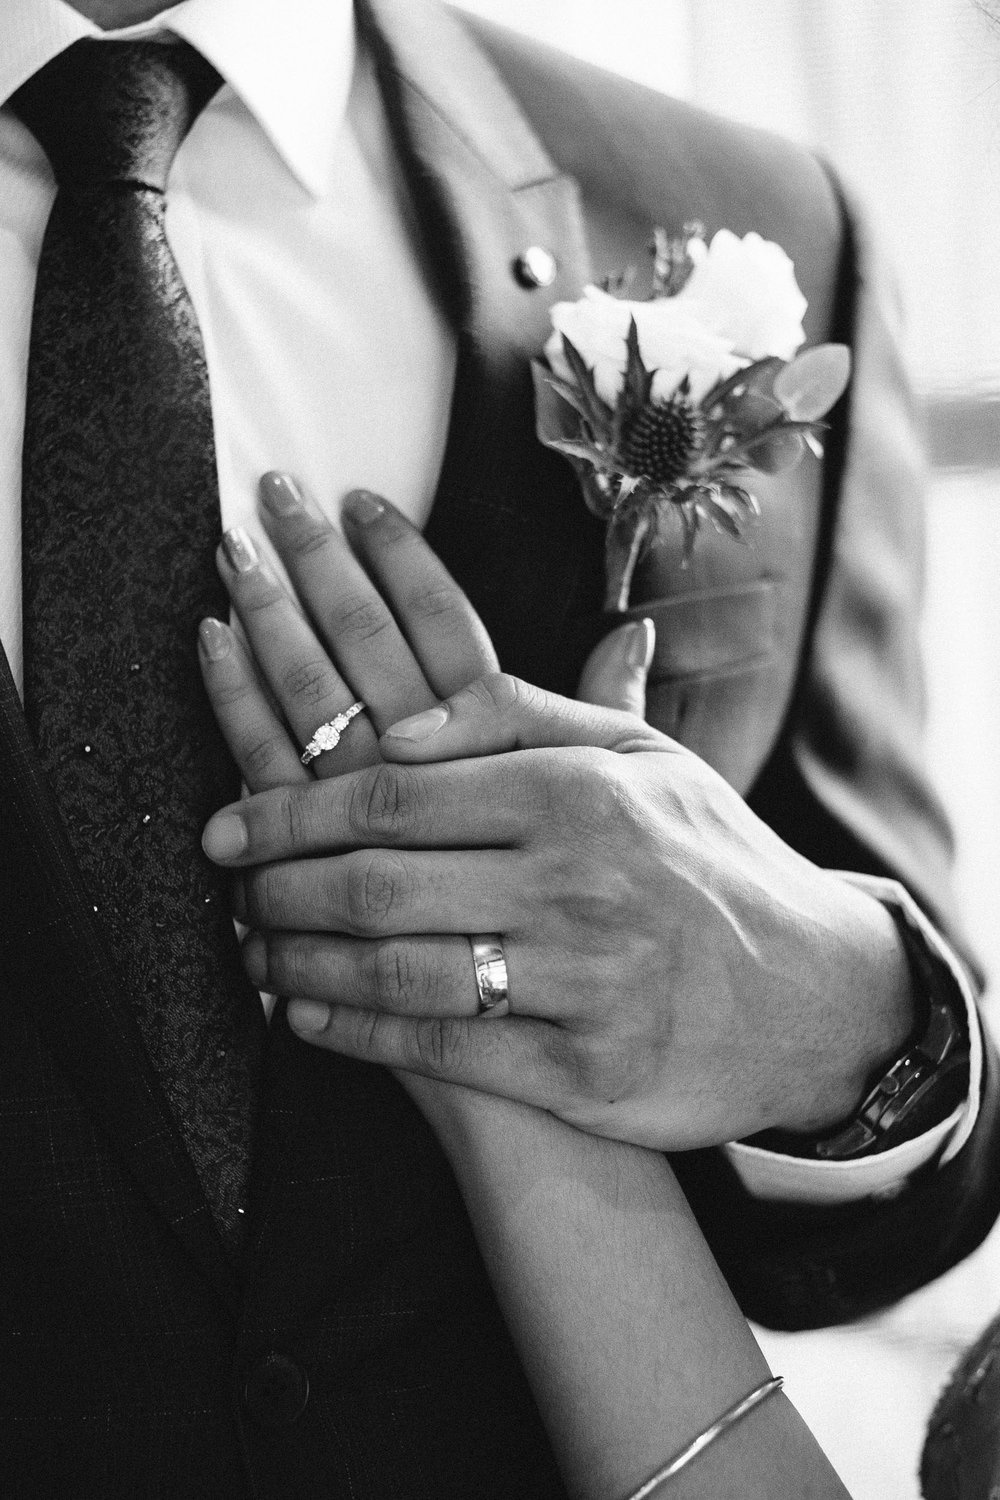 Bride and groom holding hands showing wedding rings in black and white photo